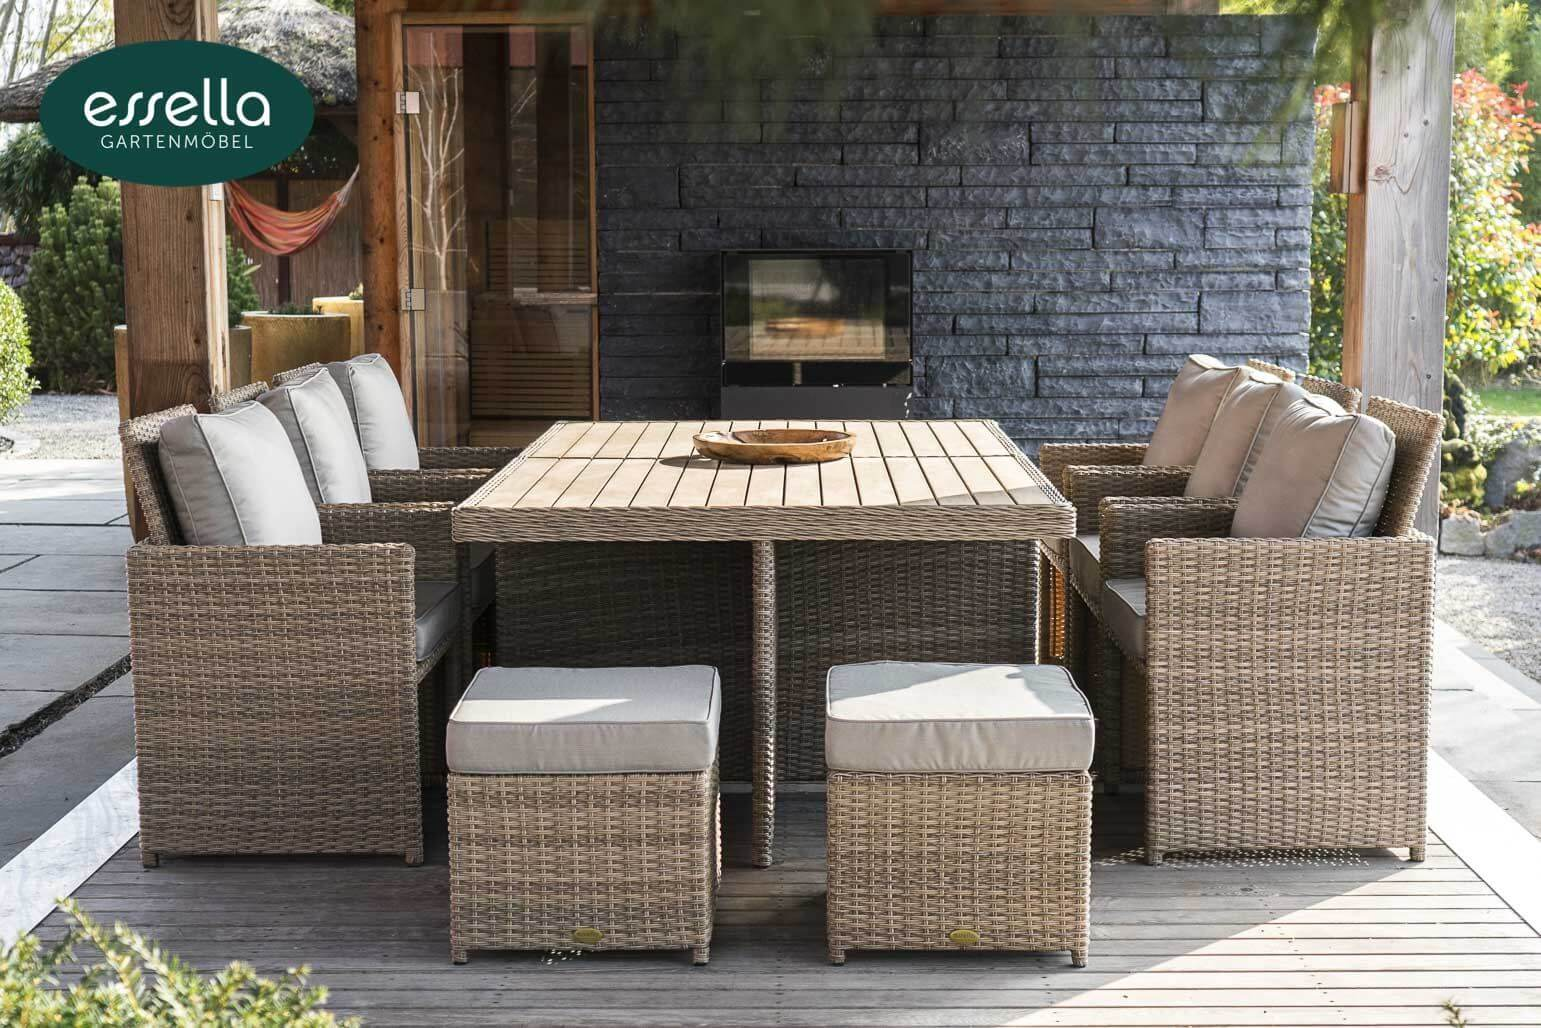 essella polyrattan sitzgruppe vienna 6 personen polywood rundgeflecht. Black Bedroom Furniture Sets. Home Design Ideas